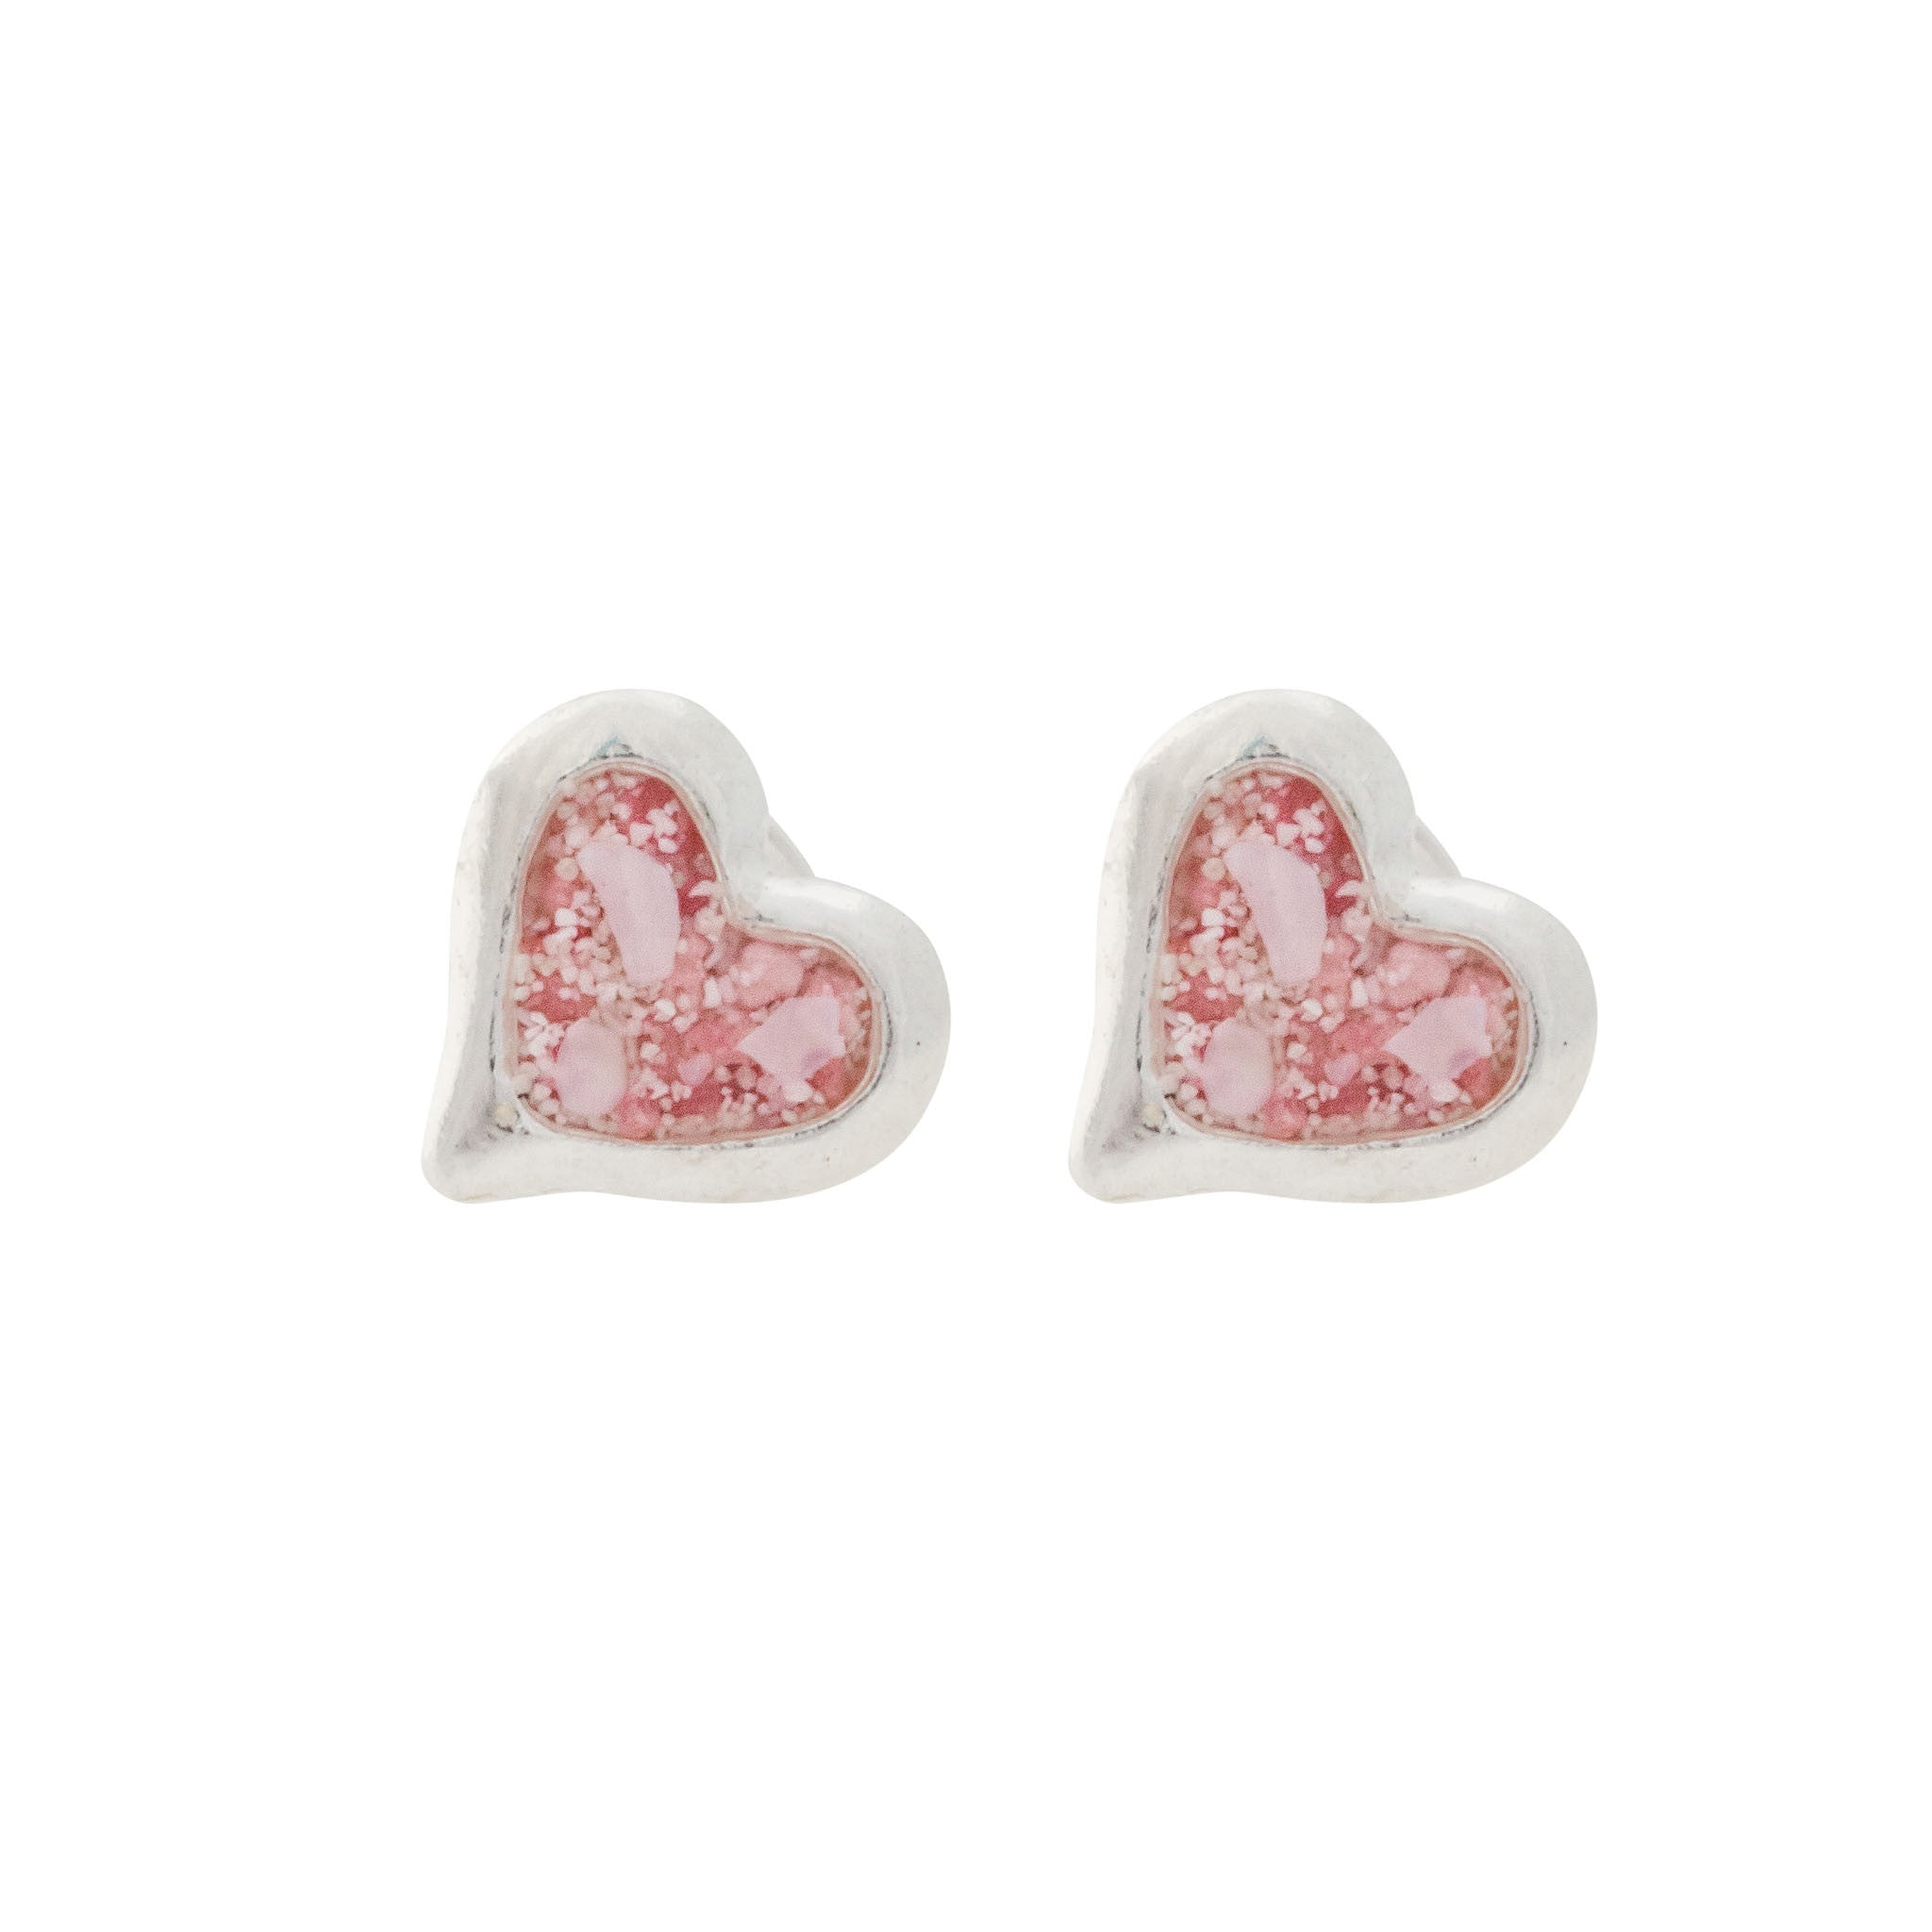 fiorelli silver earrings image from stud heart ribbon